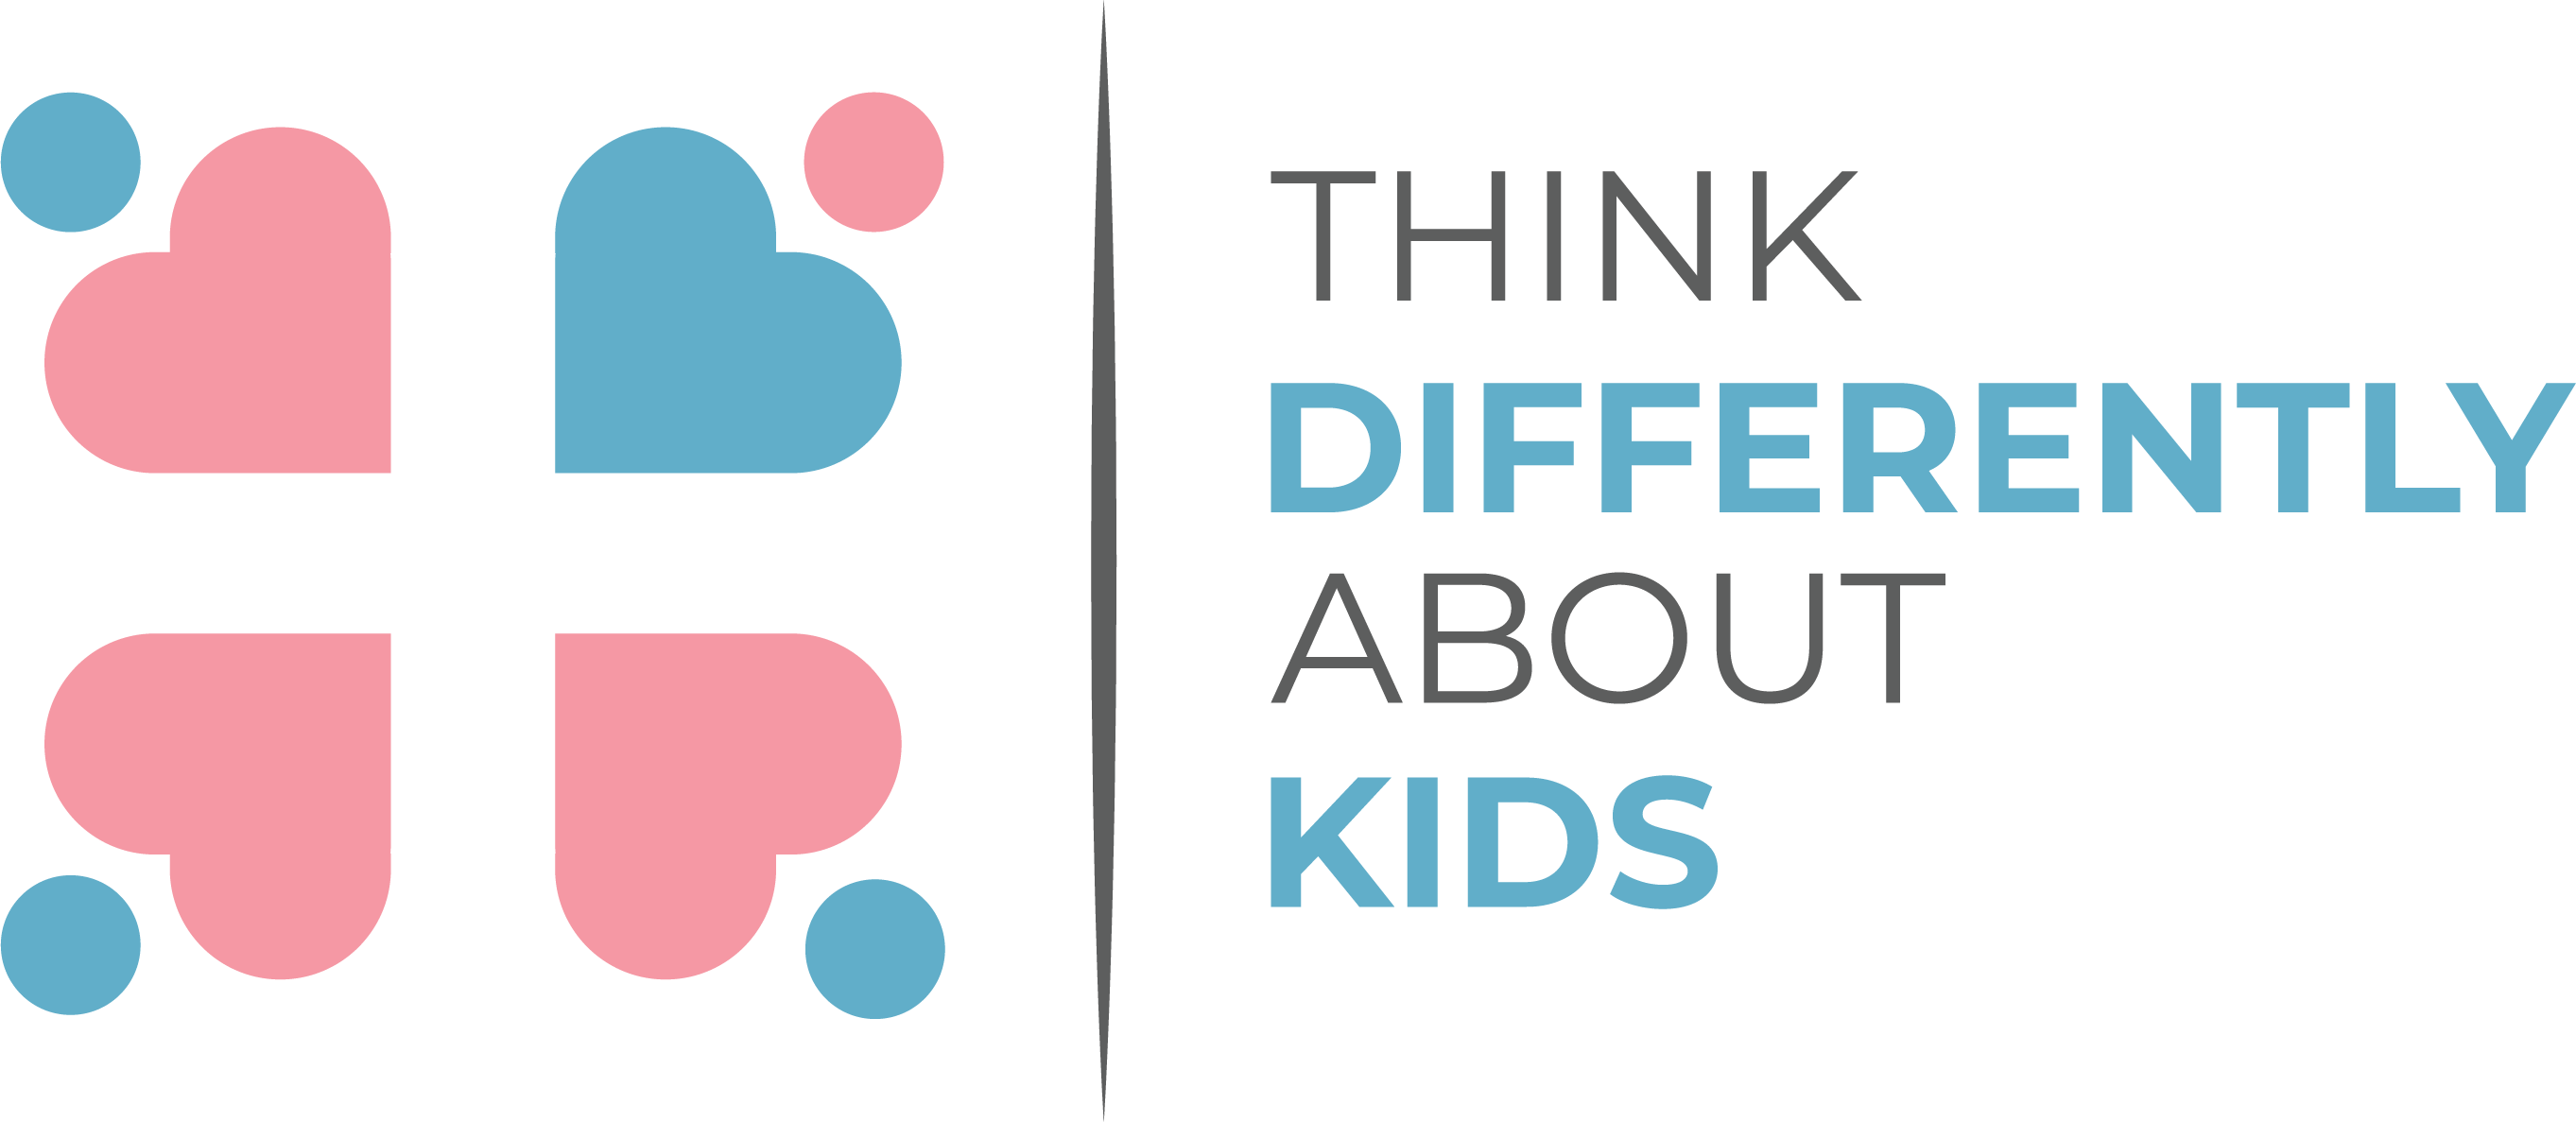 Think Differently About Kids